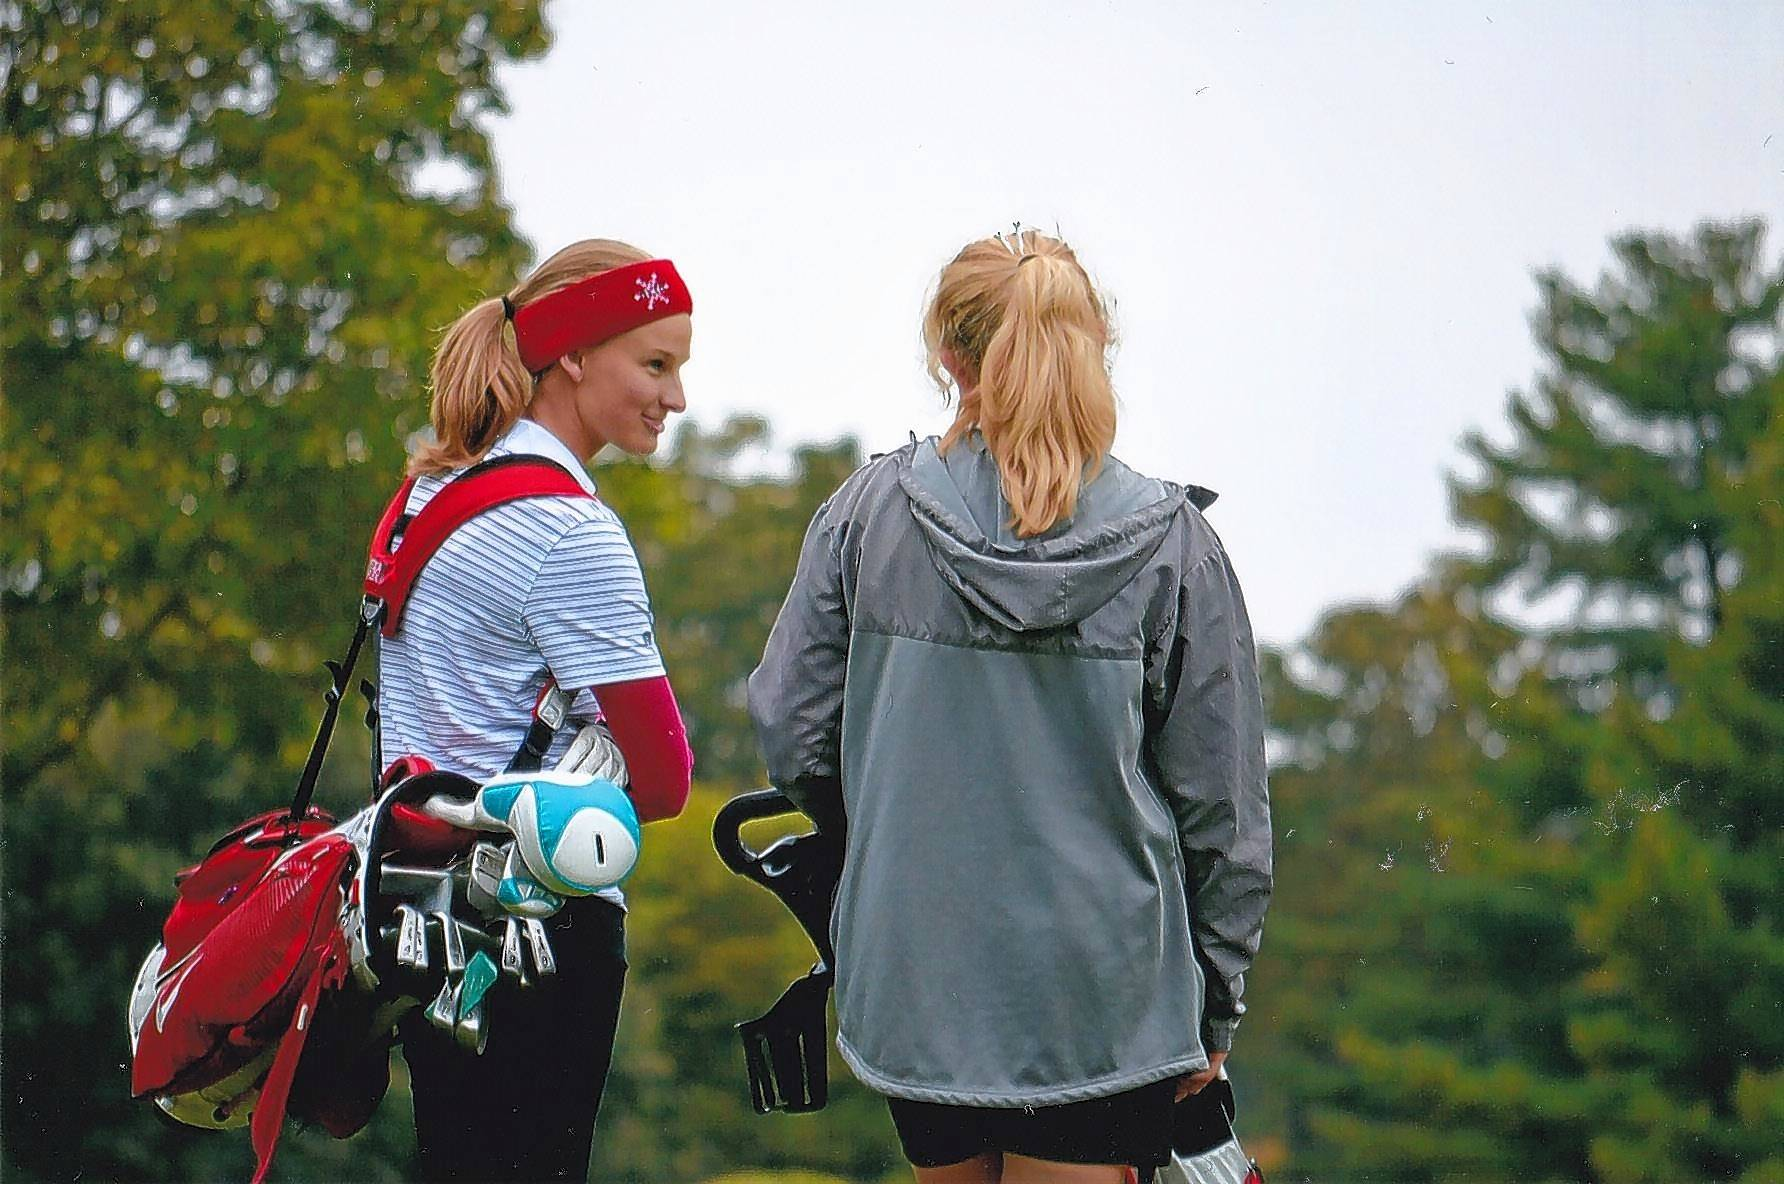 Hannah Gillespie, in red, helps a teammate on the Marian Central Catholic High School golf team. When she began caddying in seventh grade, she knew nothing about golf. She will attend the University of Notre Dame in the fall as an Evans Scholar.